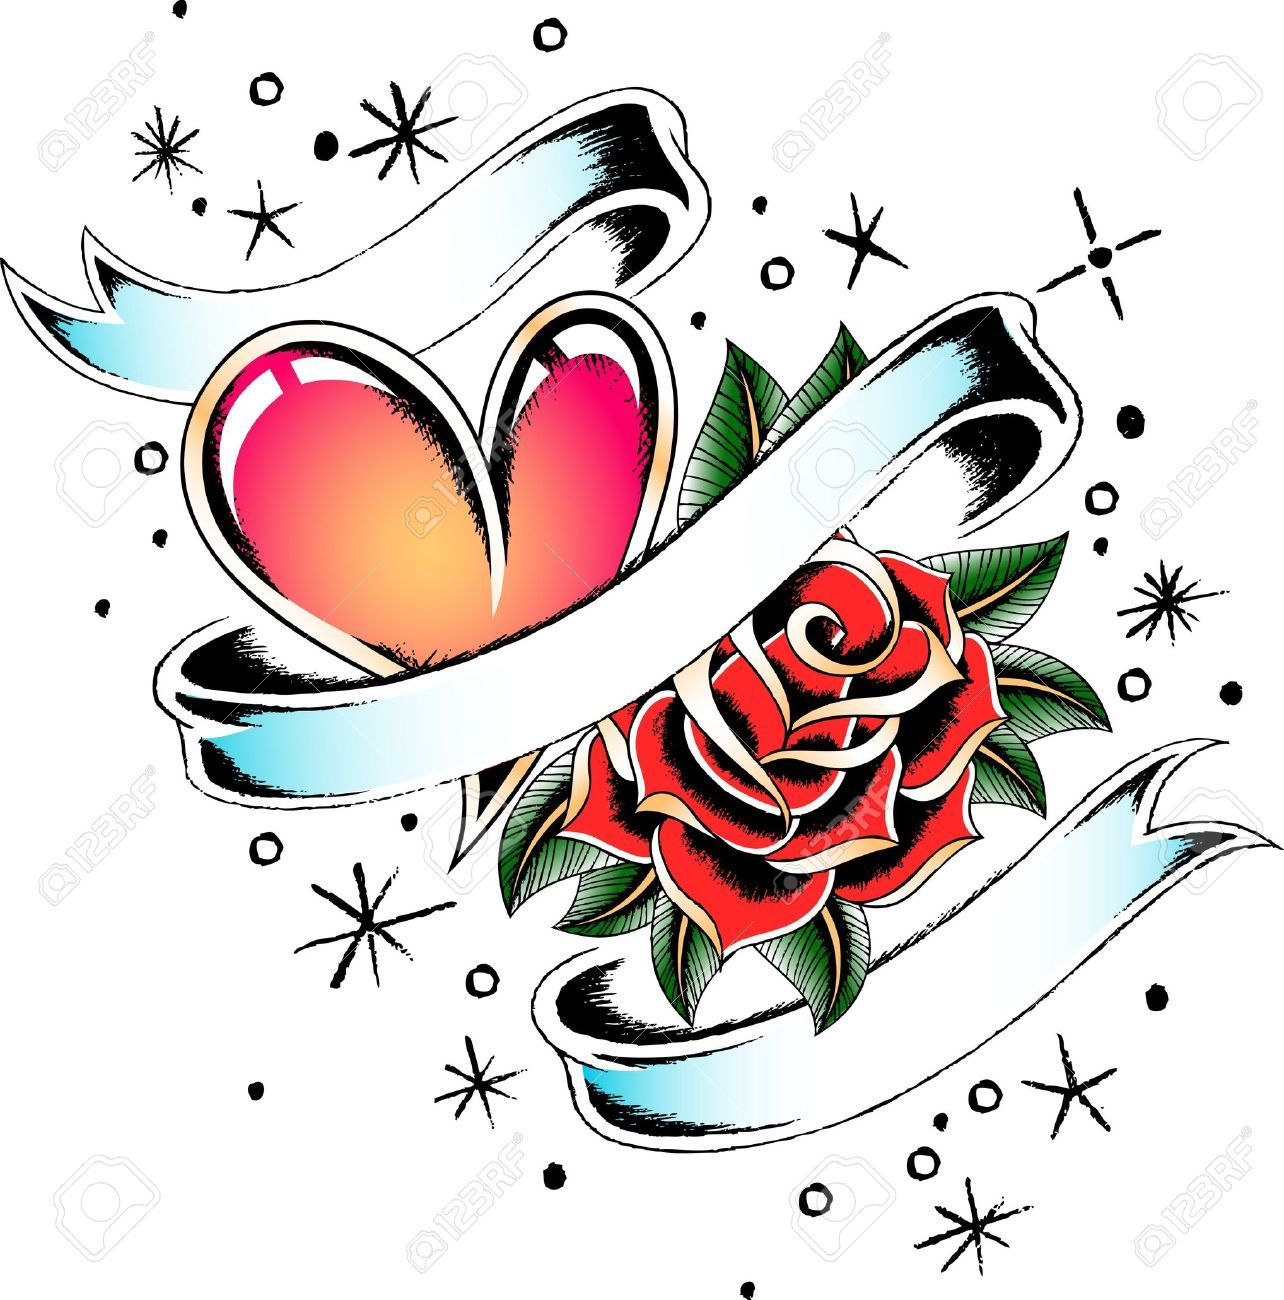 Heart With Rose And Banner: Tattoo Heart With A Banner - Google Search